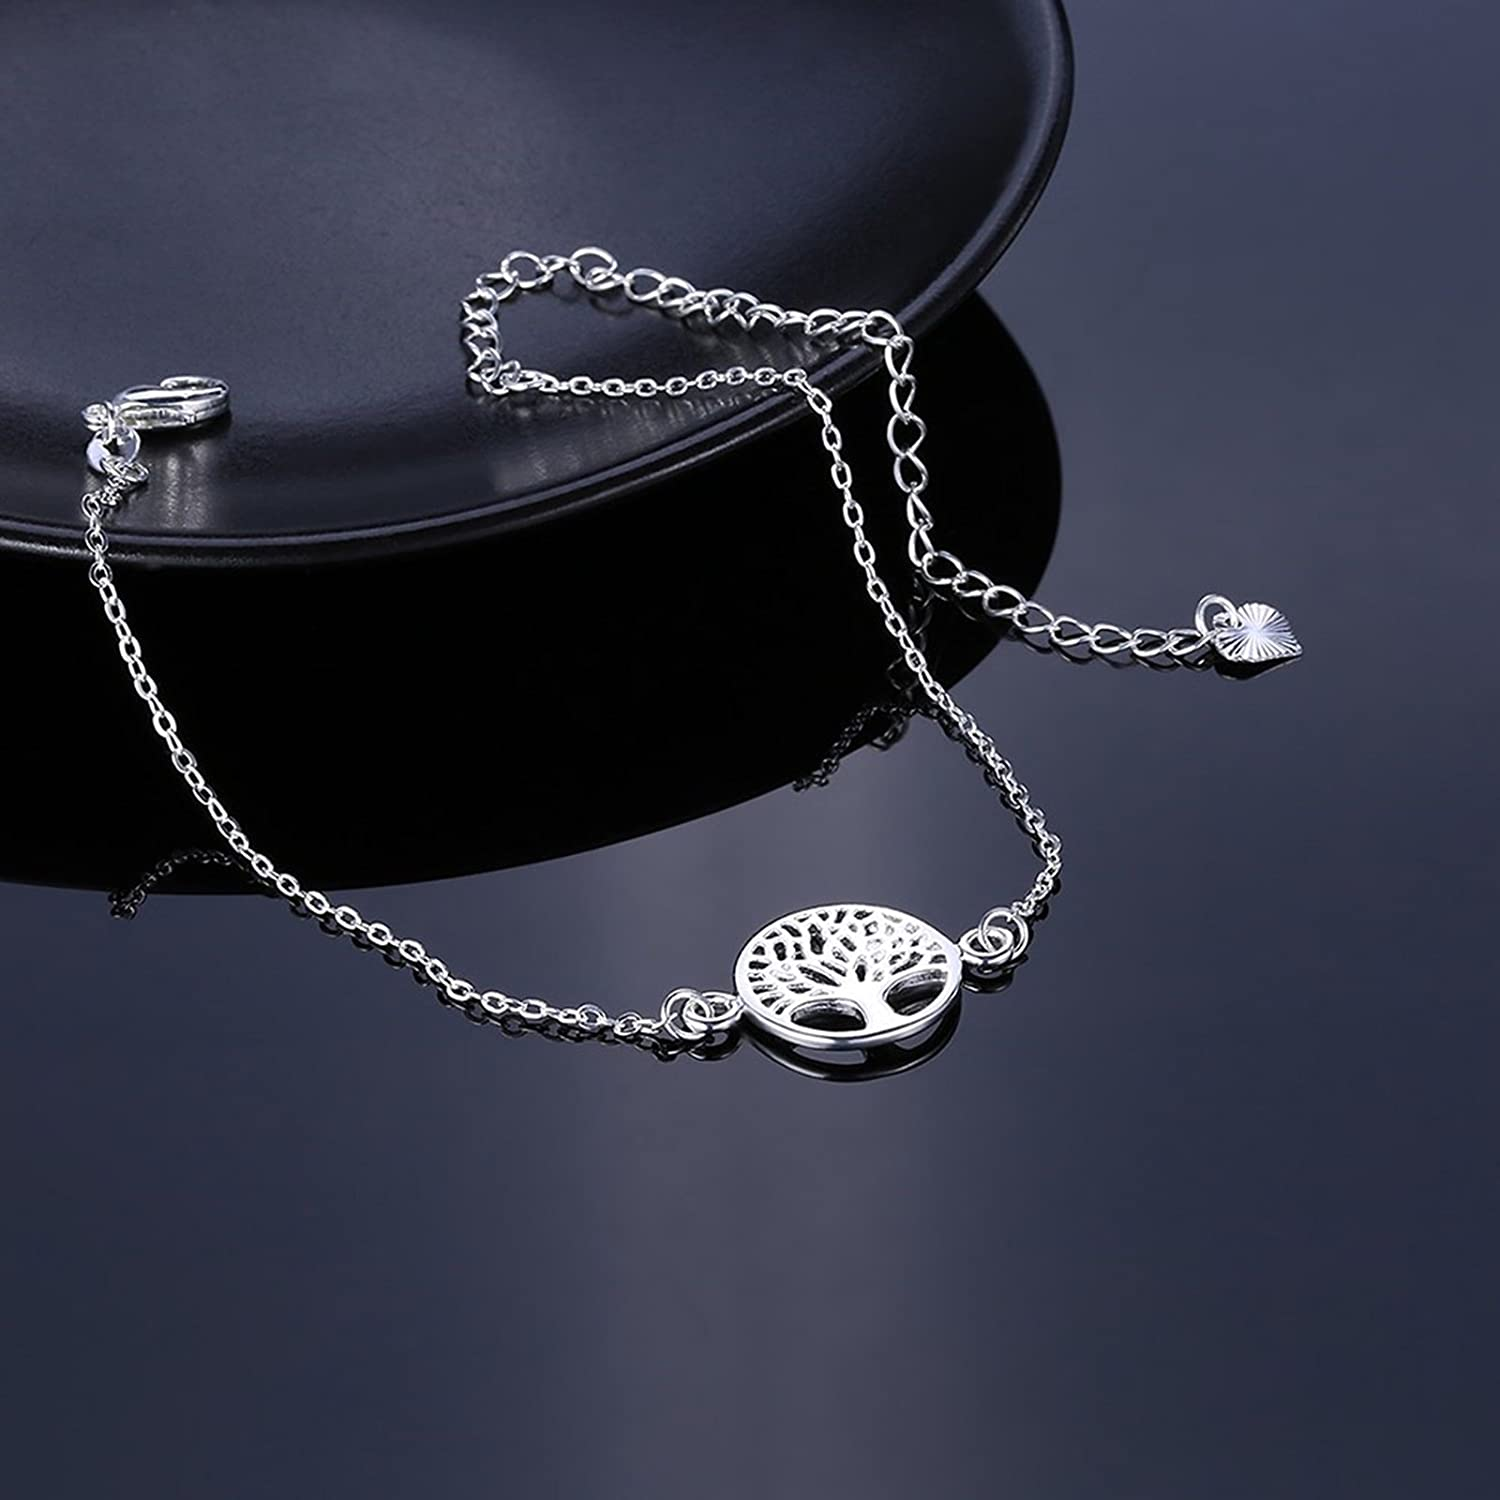 Aeici Jewellery Silver Plated Anklets for Women Tree Of Life Silver Beach Anklet 1.5 X 2.4 CM QITke